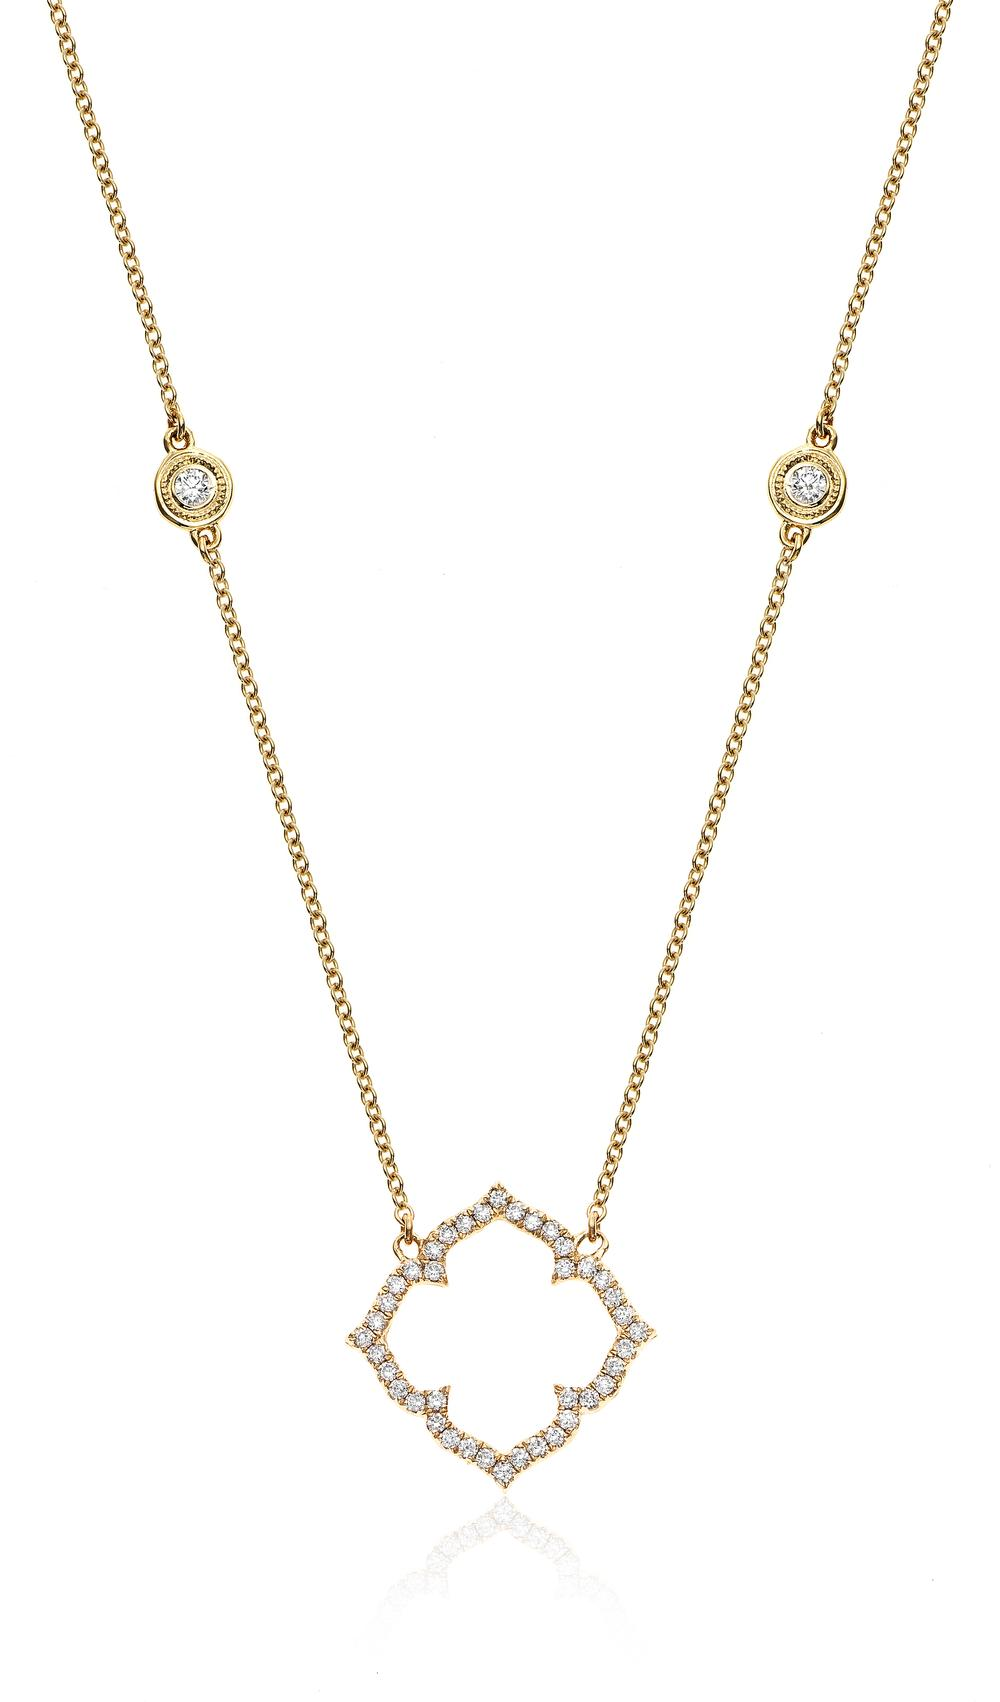 Open Pave Diamond Clover with Milgrain Bezels Necklace